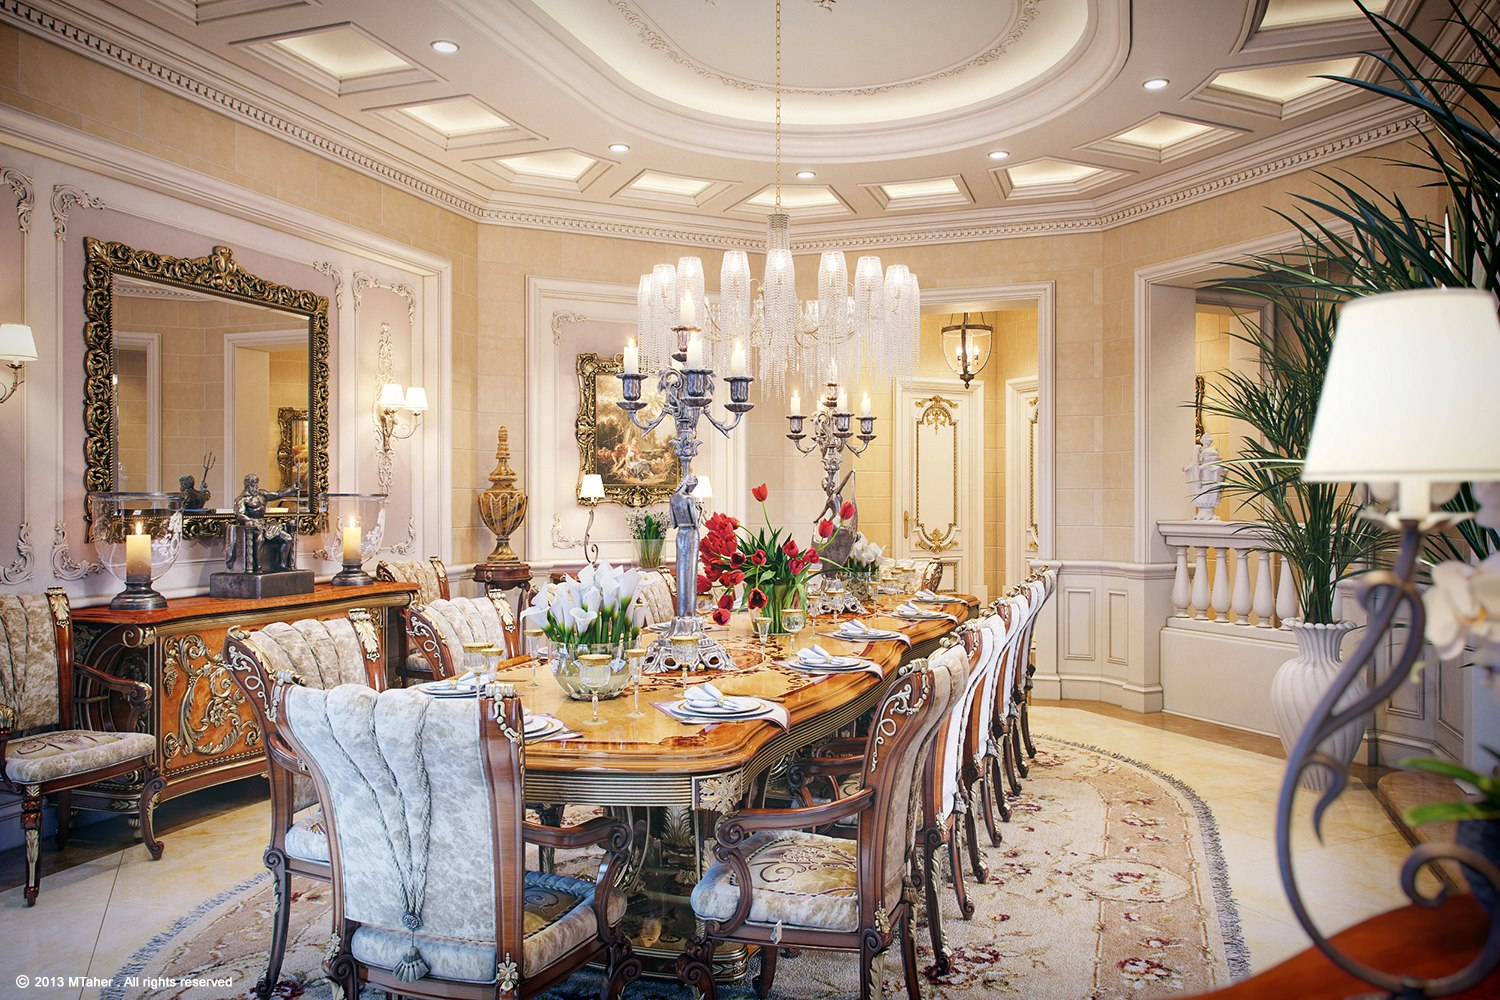 Luxury villa in qatar visualized - Houston dining room furniture ideas ...